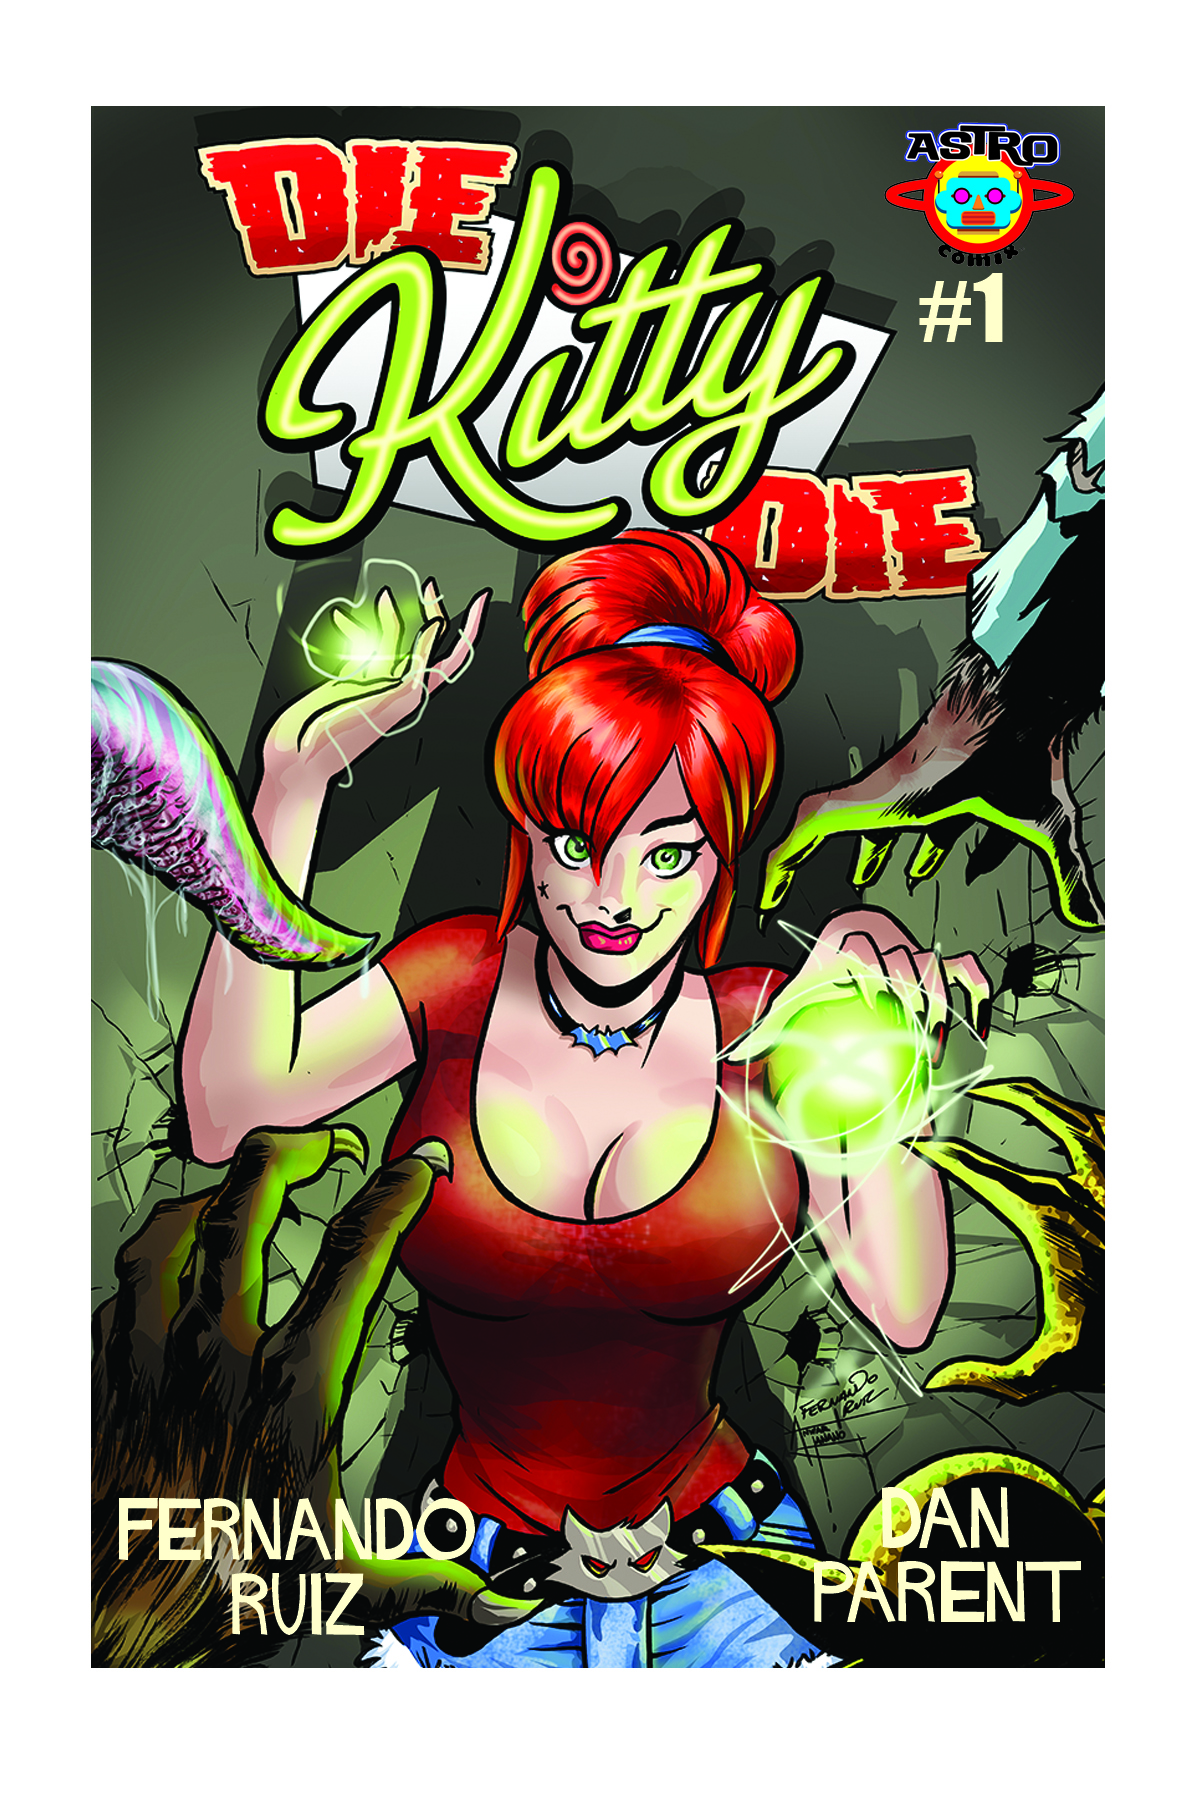 kitty #1 fern cover cover